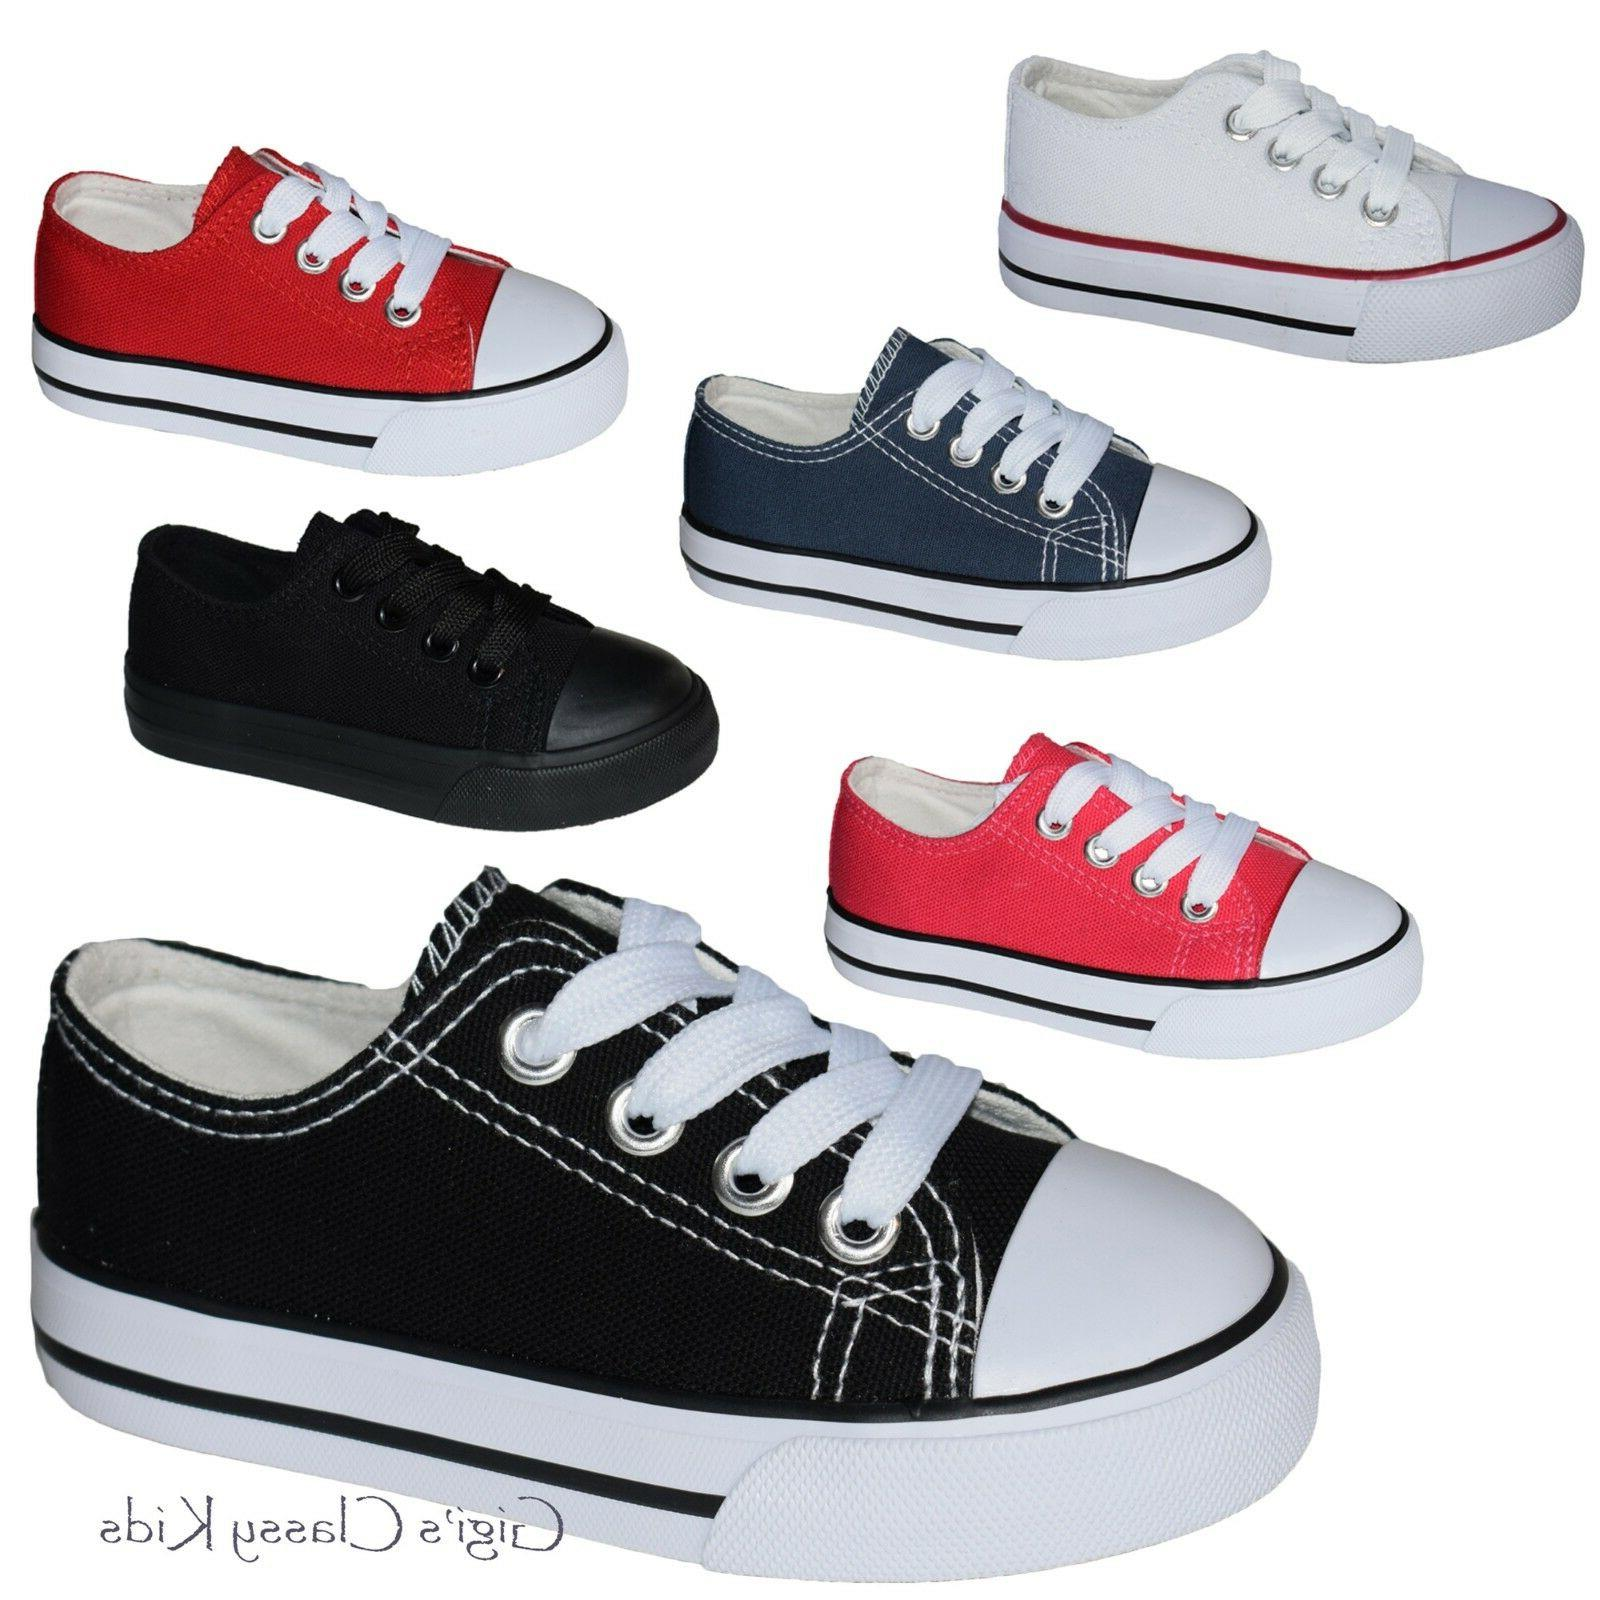 new baby toddler boys girls low classic